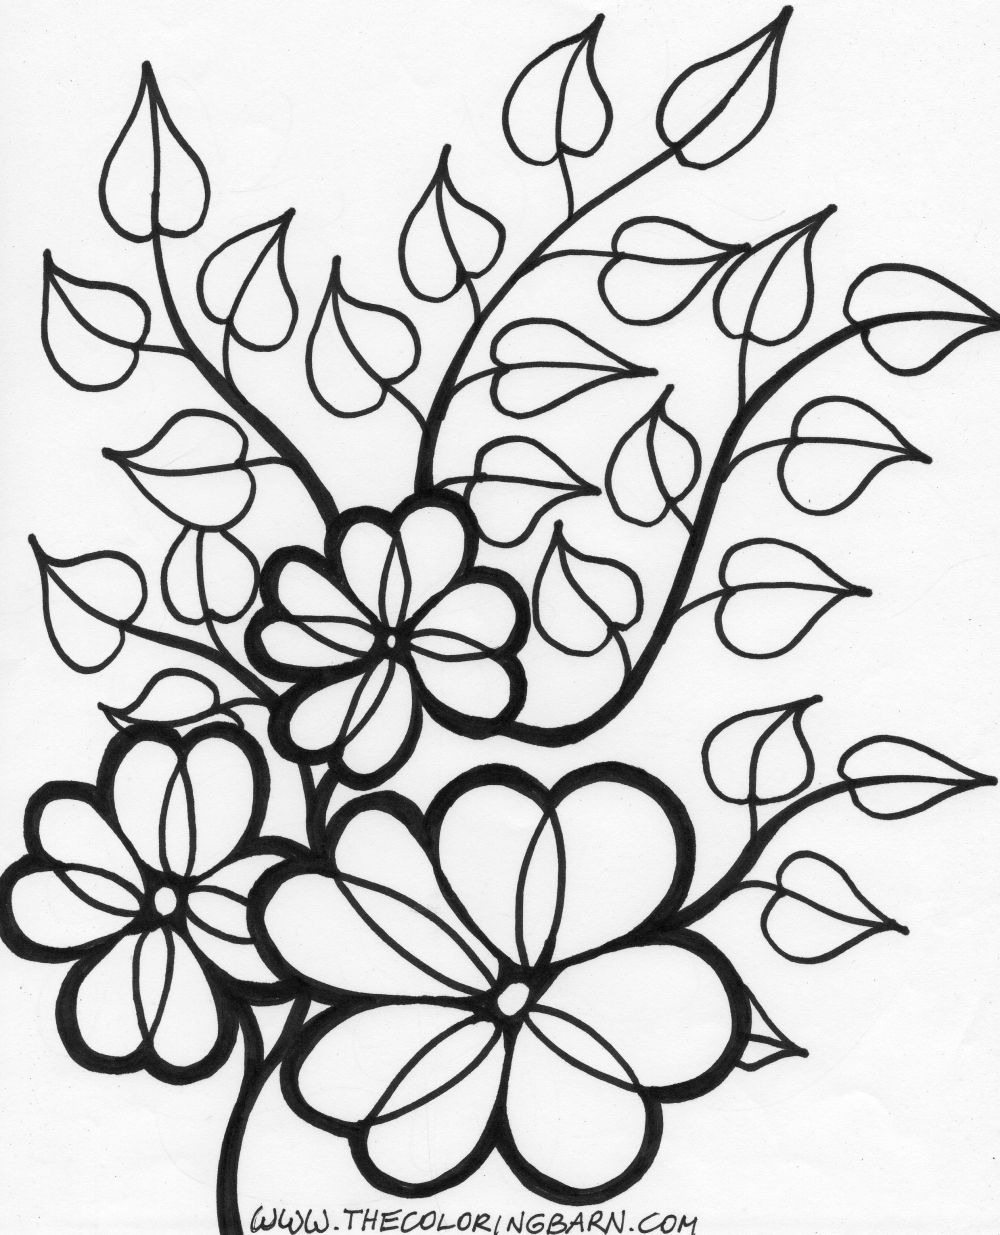 Floral coloring #10, Download drawings